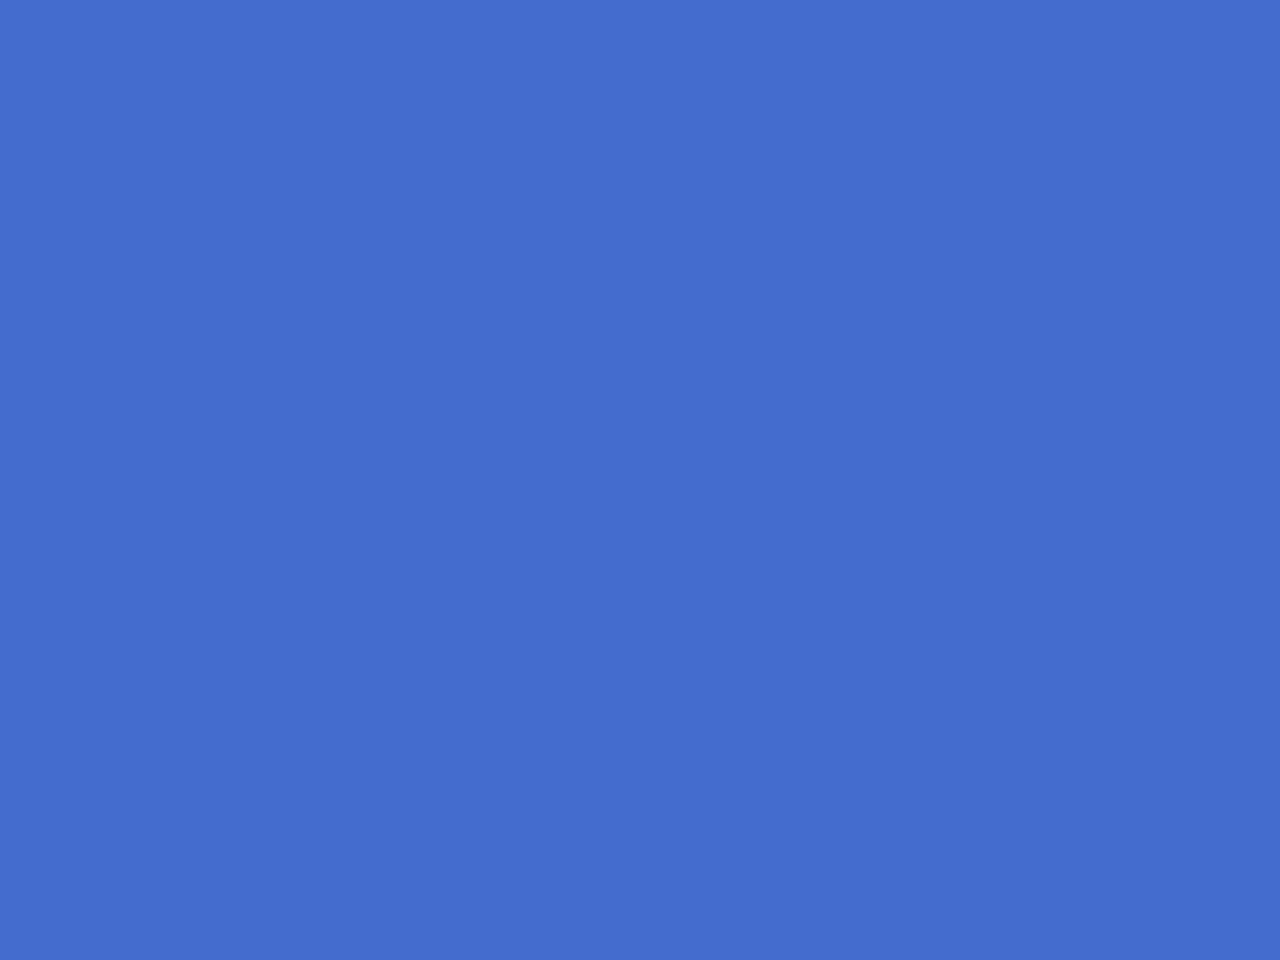 1280x960 Han Blue Solid Color Background